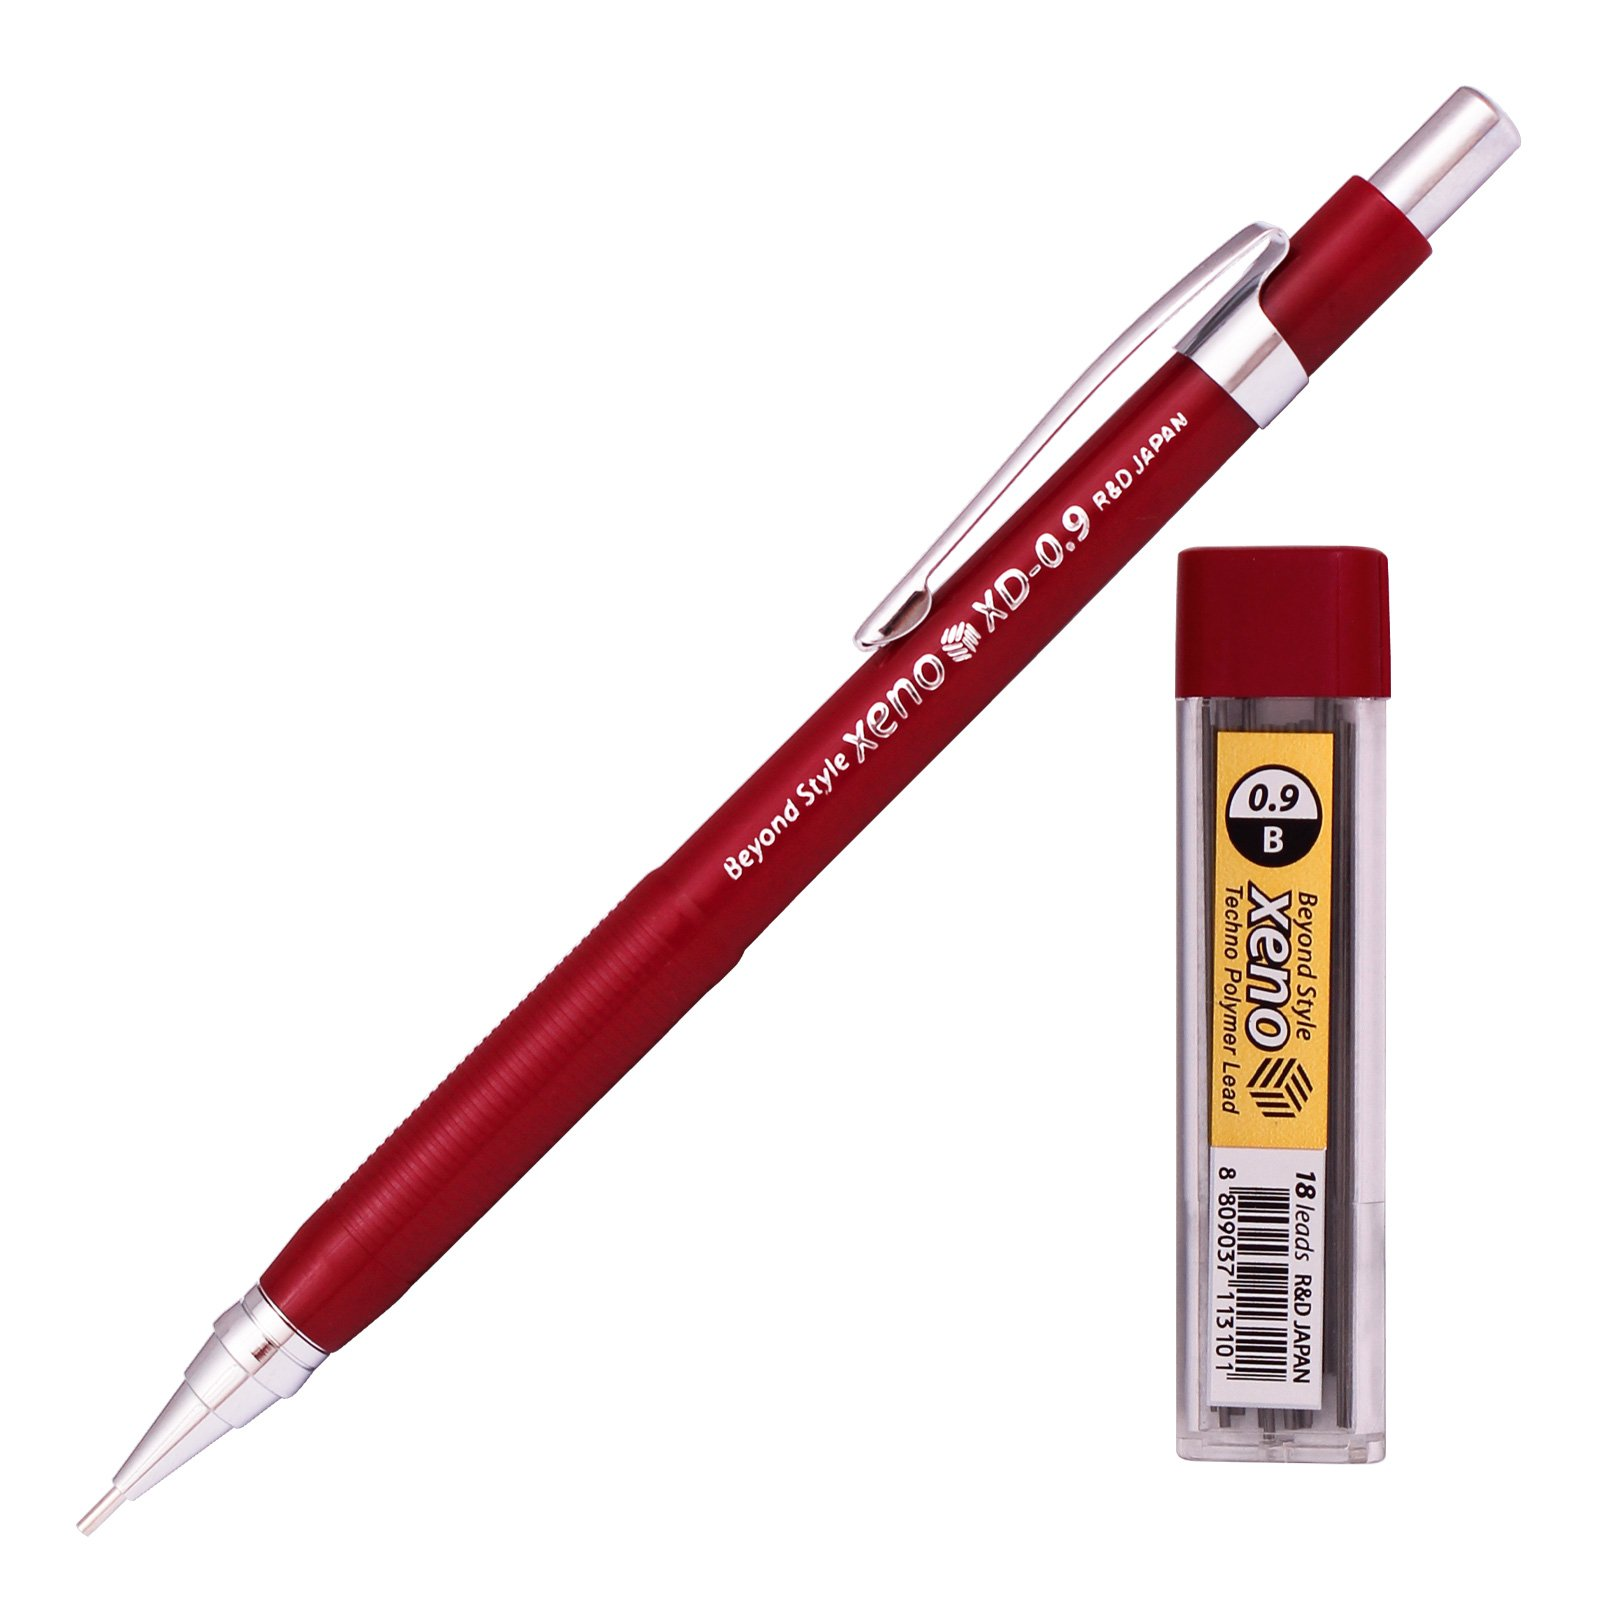 Xeno Beyond Style-Xd Mechanical Pencil for Drafting Sharp Pencils 0.3 mm /0.5 mm /0.7 mm /0.9 mm/ 1.3 mm (Pack of 5 Pencils) + Lead by Xeno (Image #4)